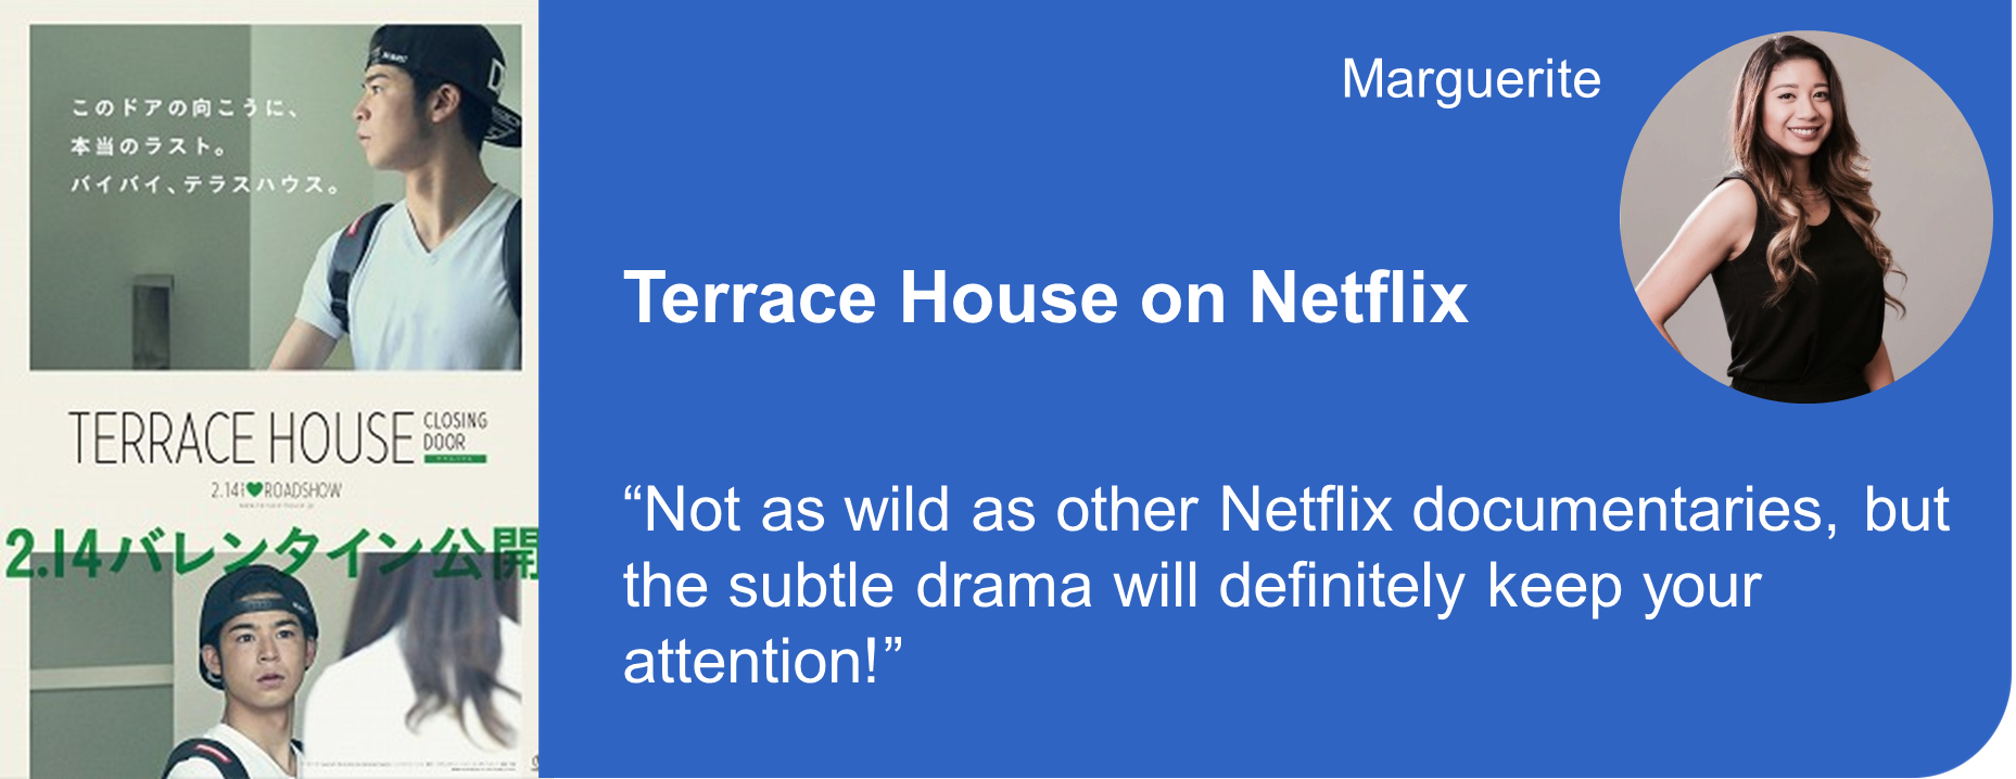 Creative Marketing Concepts Quarantine And Chill Binge-Worthy Terrace House Netflix